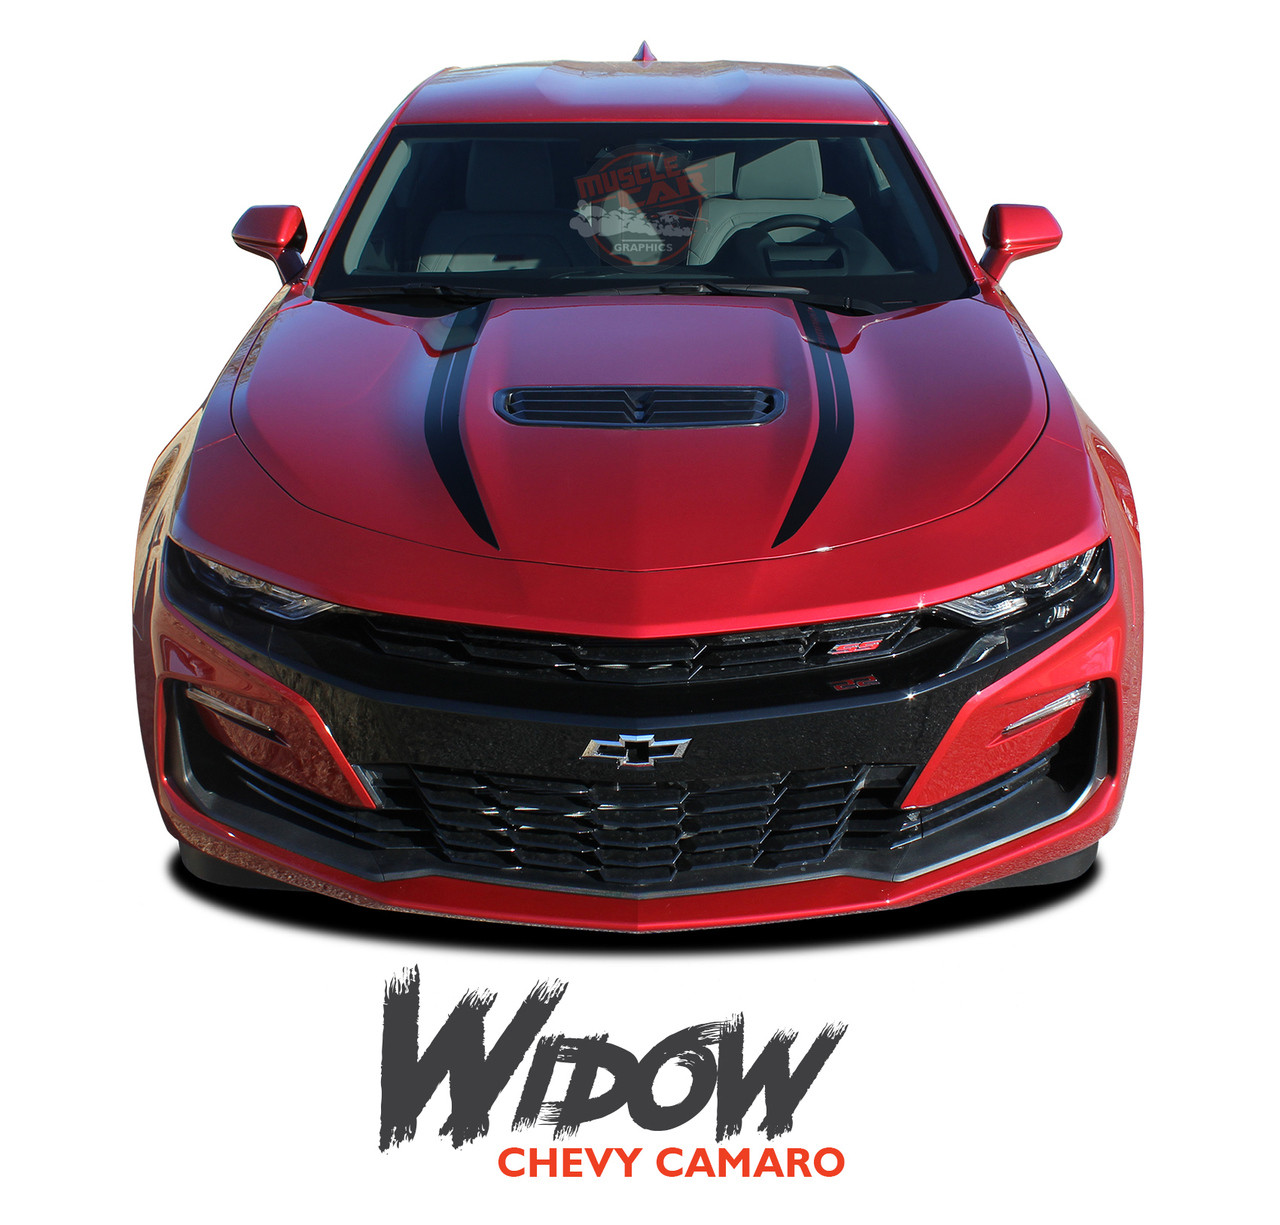 Widow 2019 camaro spider hood decals camaro hood stripes vinyl graphics